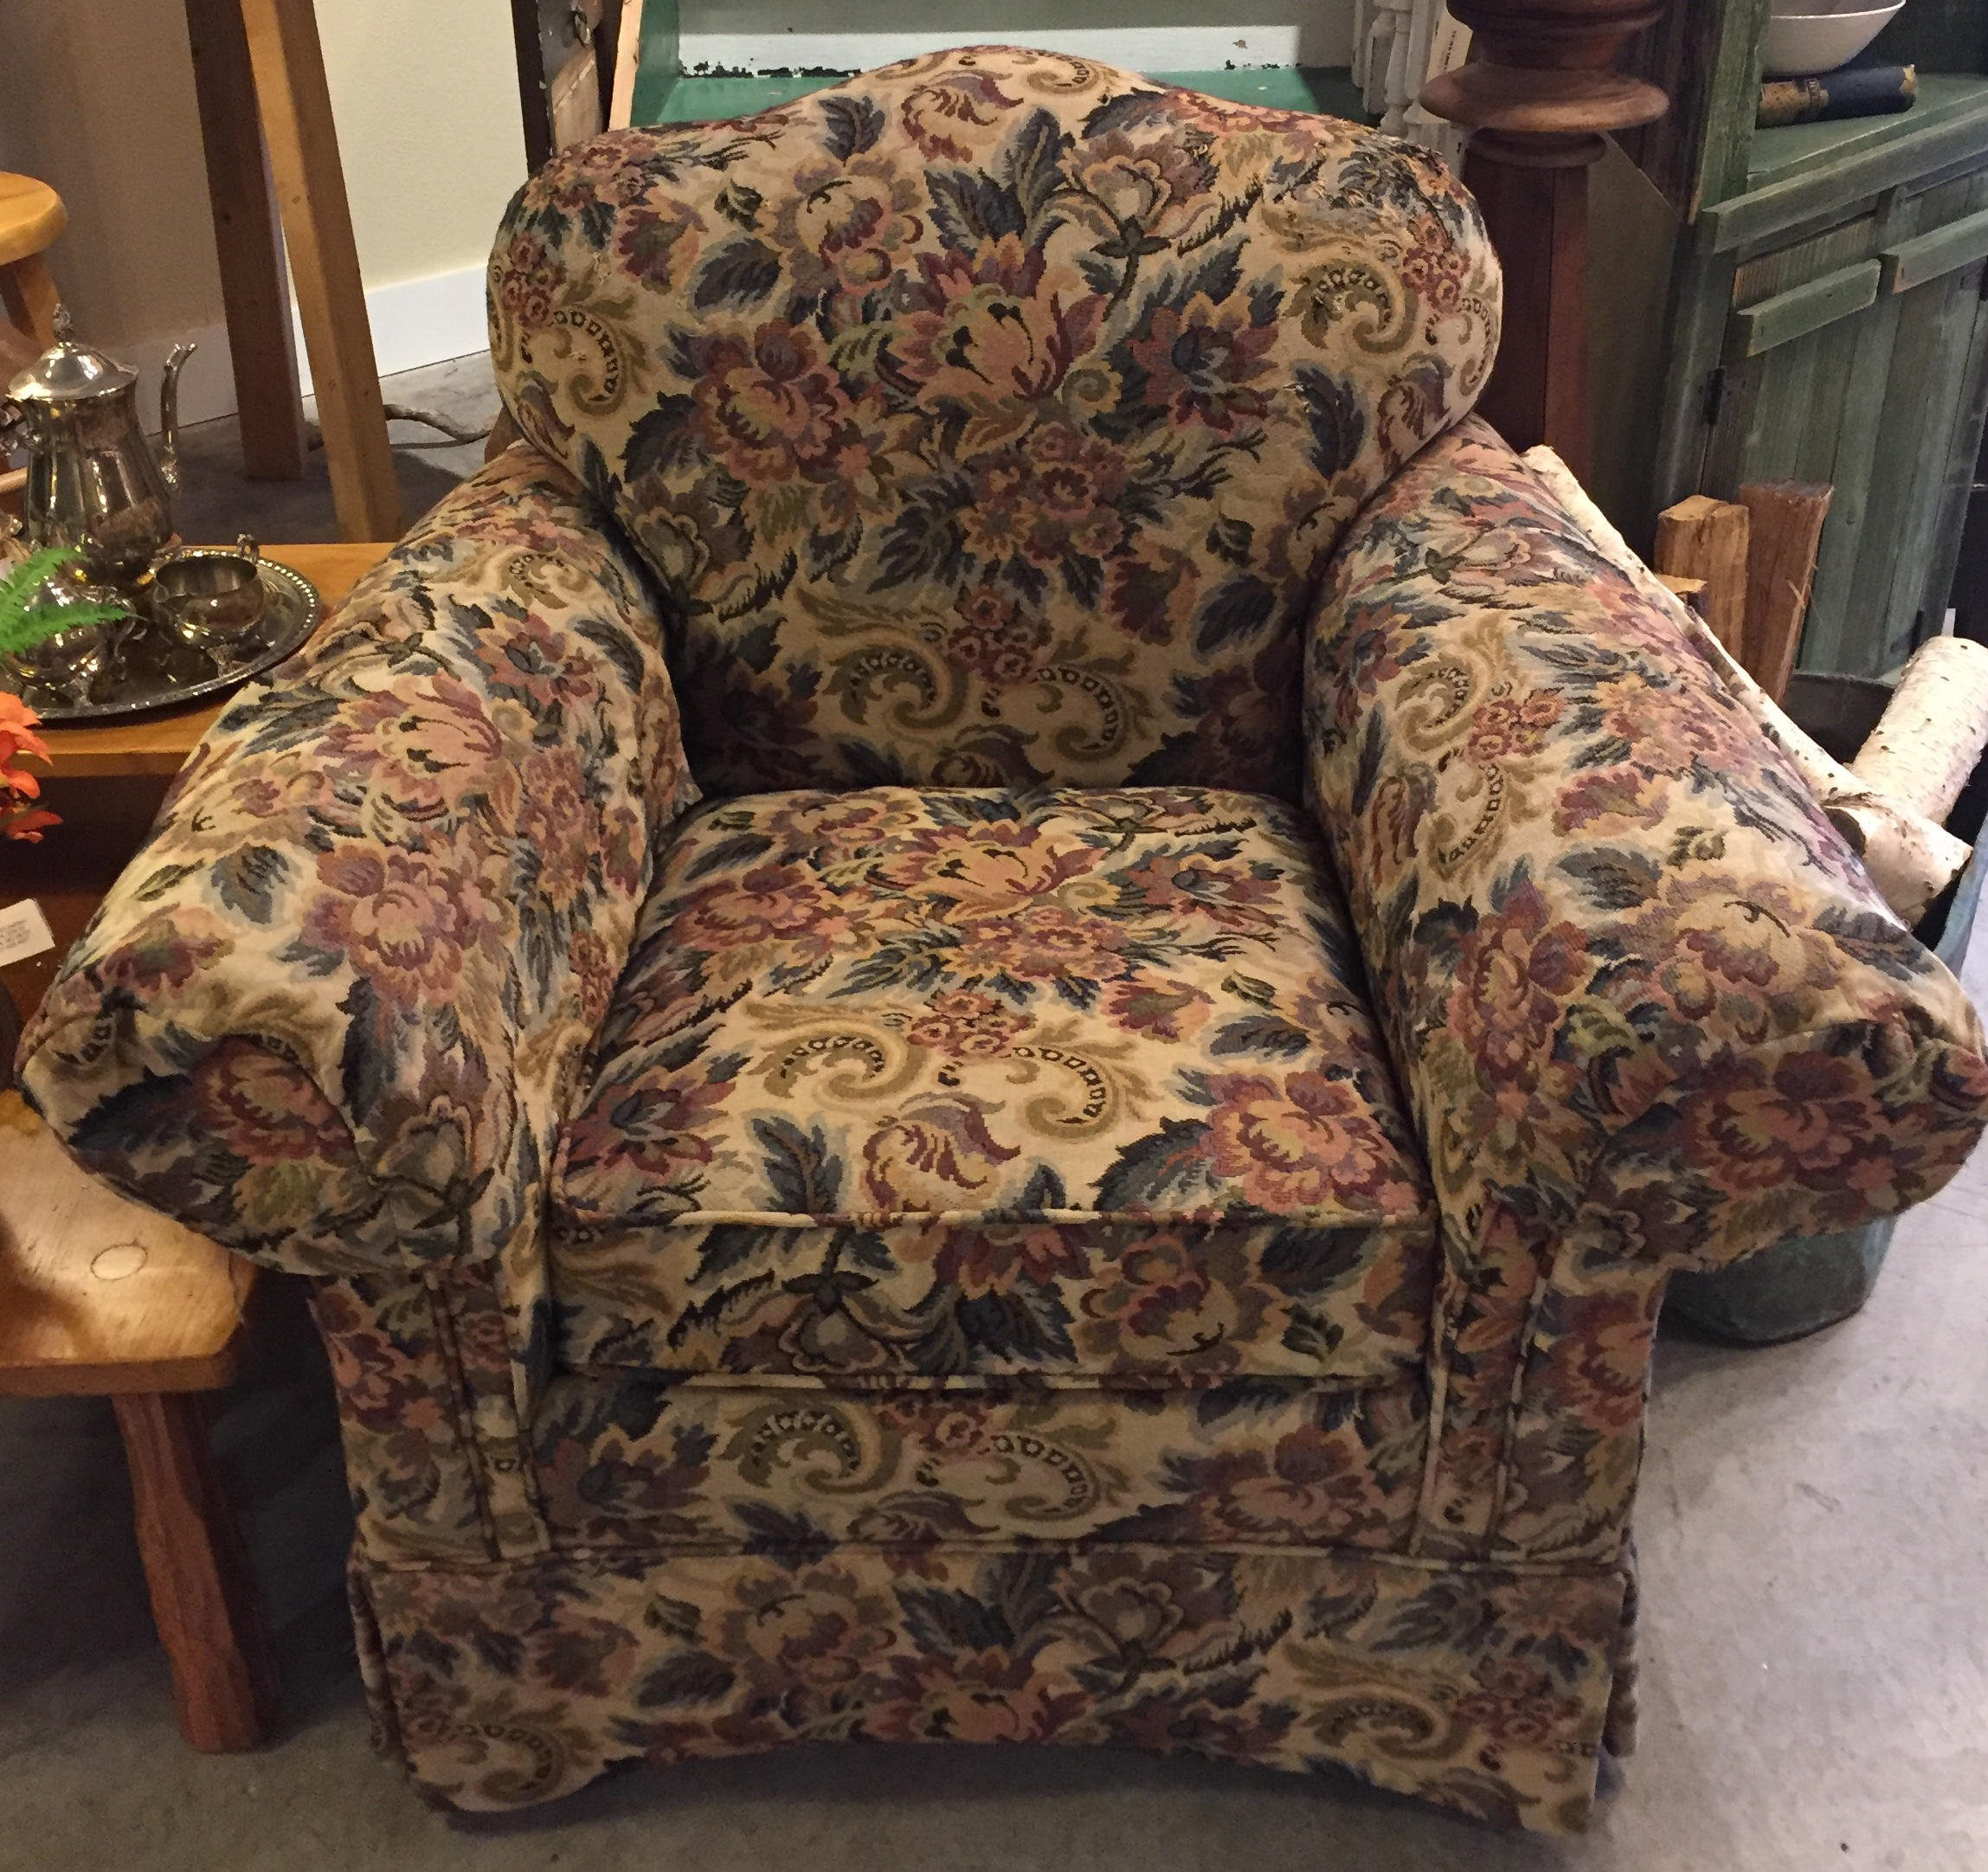 Floral Occasional Chair $139.95 - C1085 24761